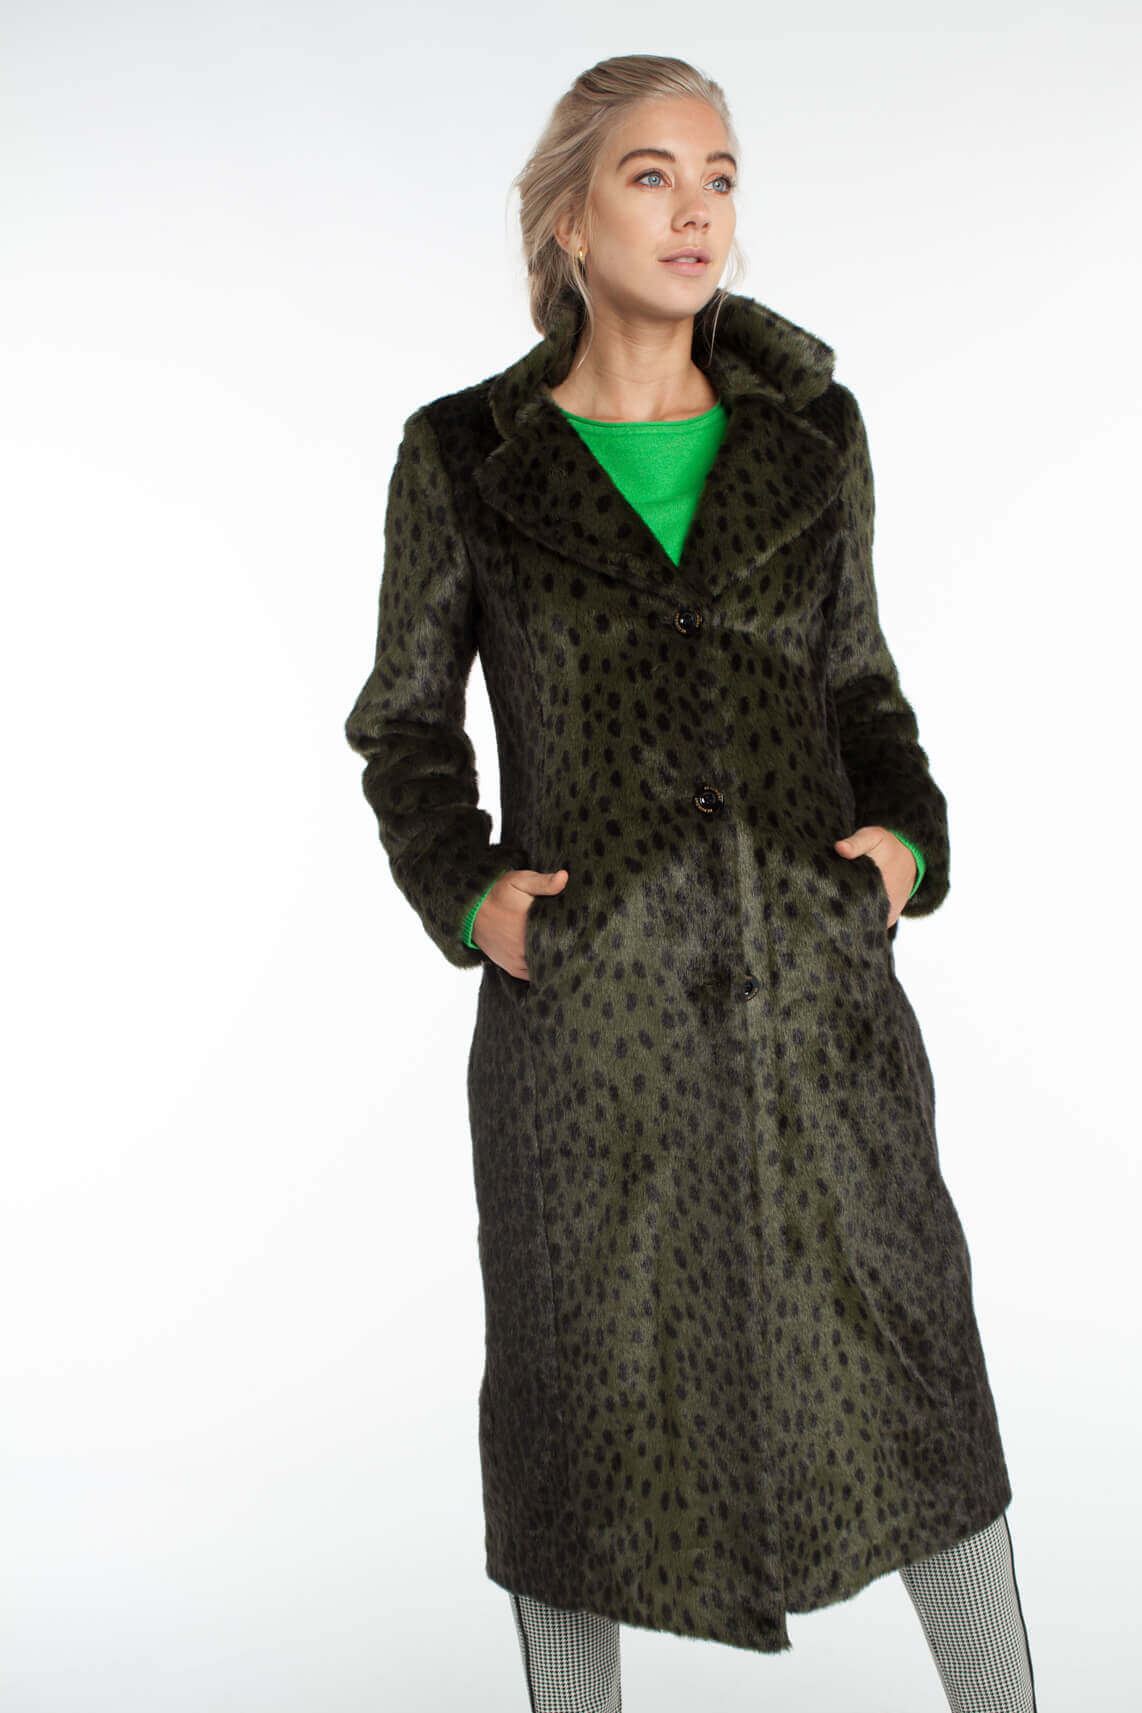 Beaumont Dames Fake fur mantel met animalprint groen